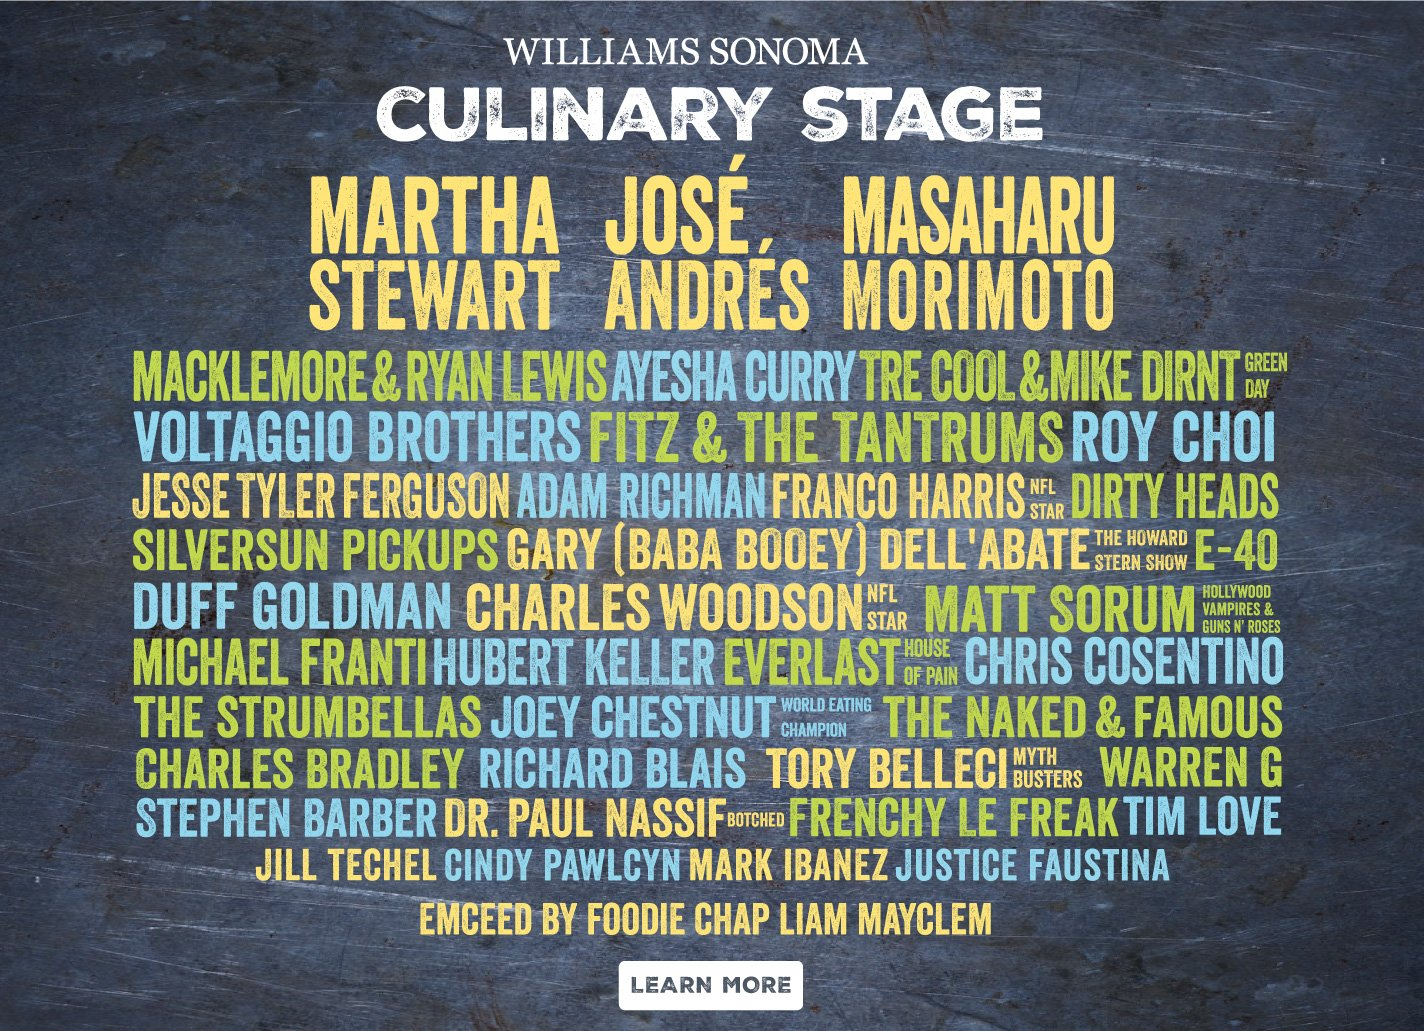 BottleRock Napa Valley Announces 2017 Williams Sonoma Culinary Stage Lineup: https://t.co/wYKslMq7iO @BottleRockNapa https://t.co/ajTLOXFhkR